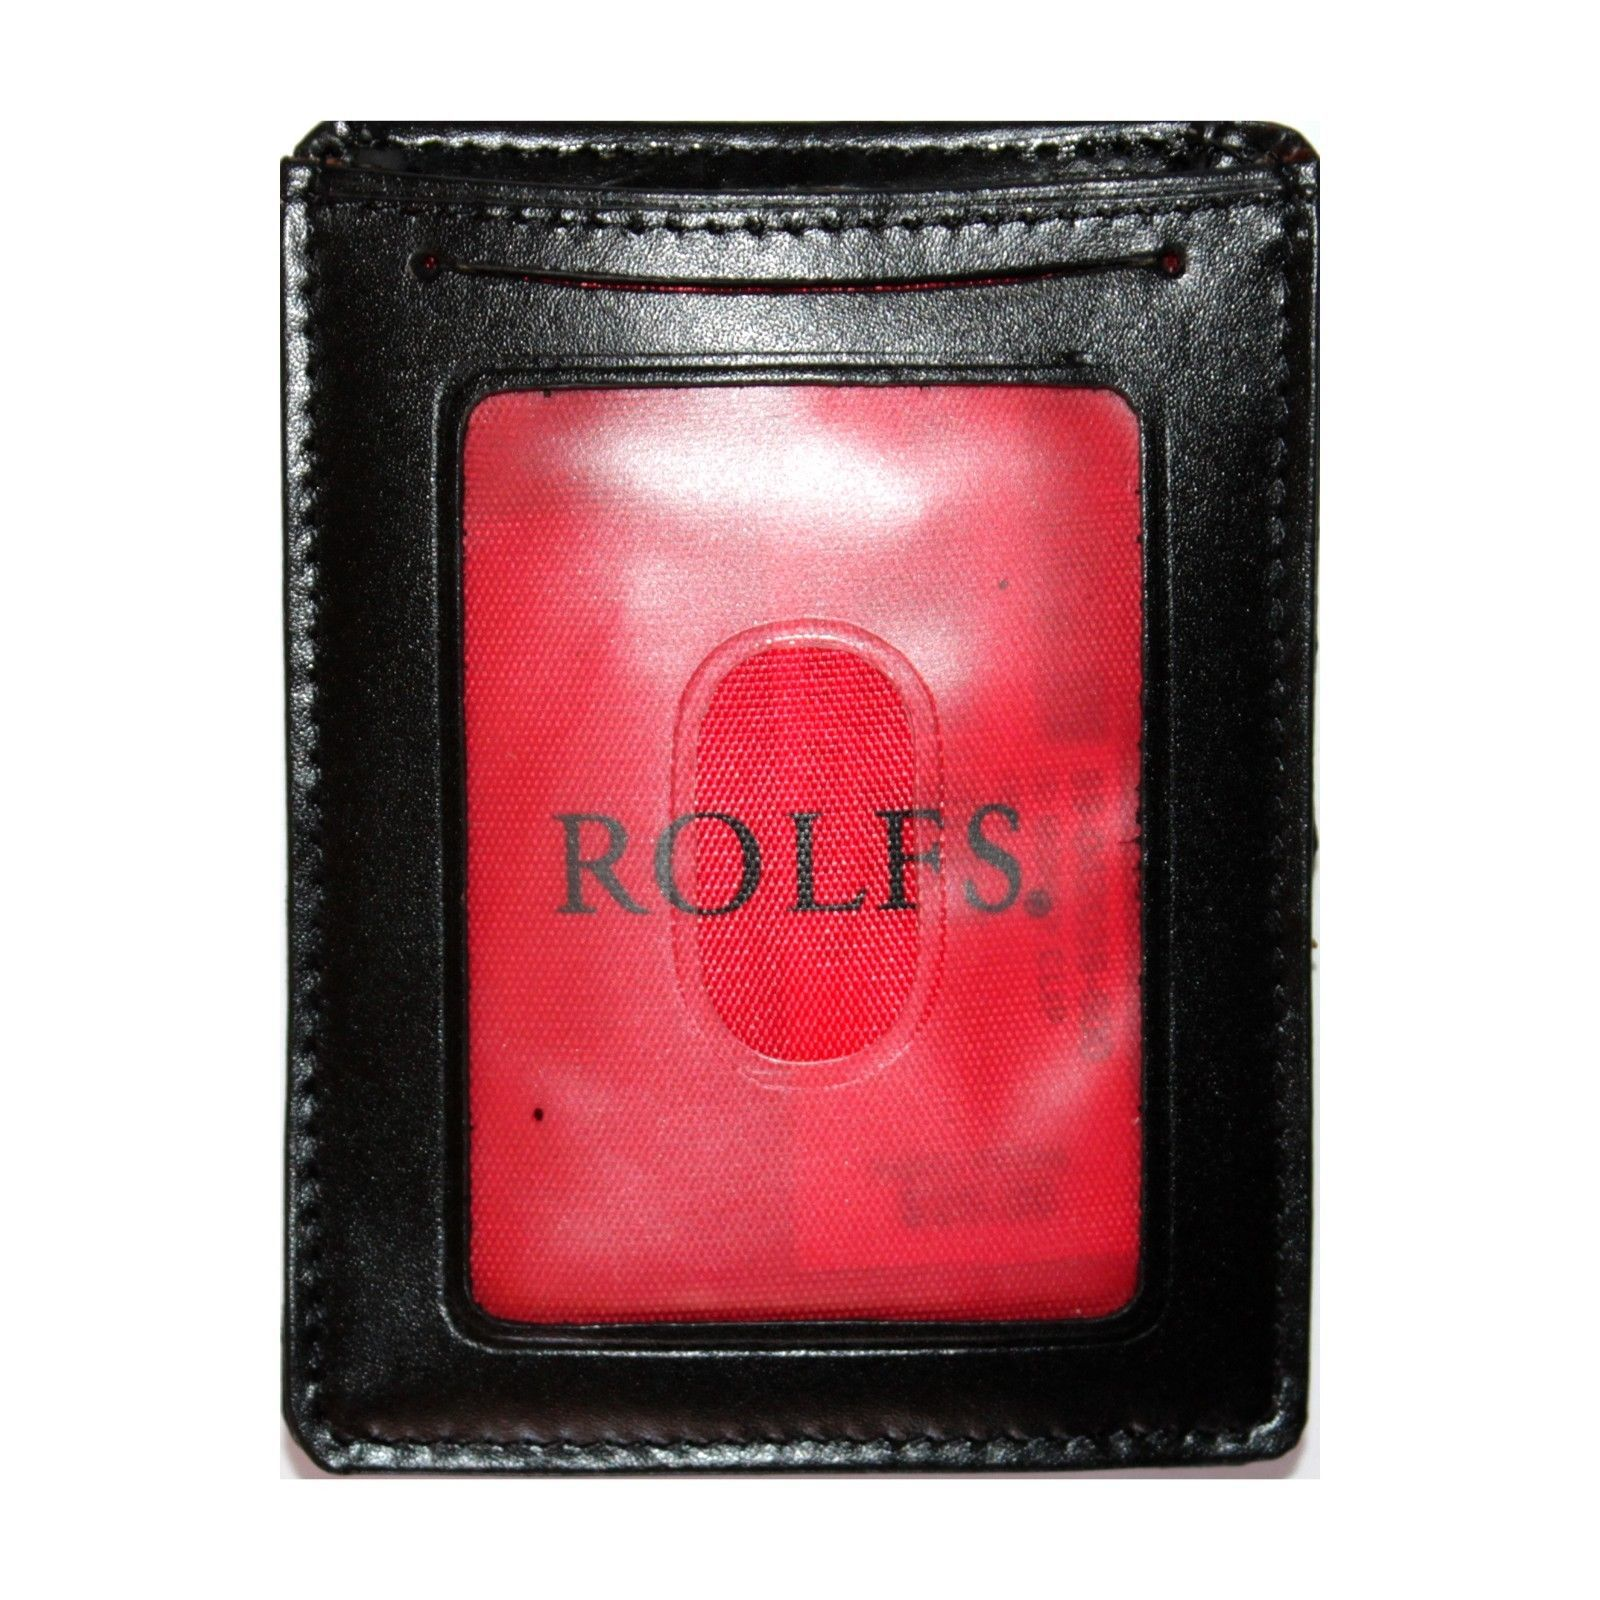 """ROLFS* 3"""" x 4"""" ID HOLDER+MONEY CLIP Black+Red GENUINE LEATHER Metal Clasp WALLET"""